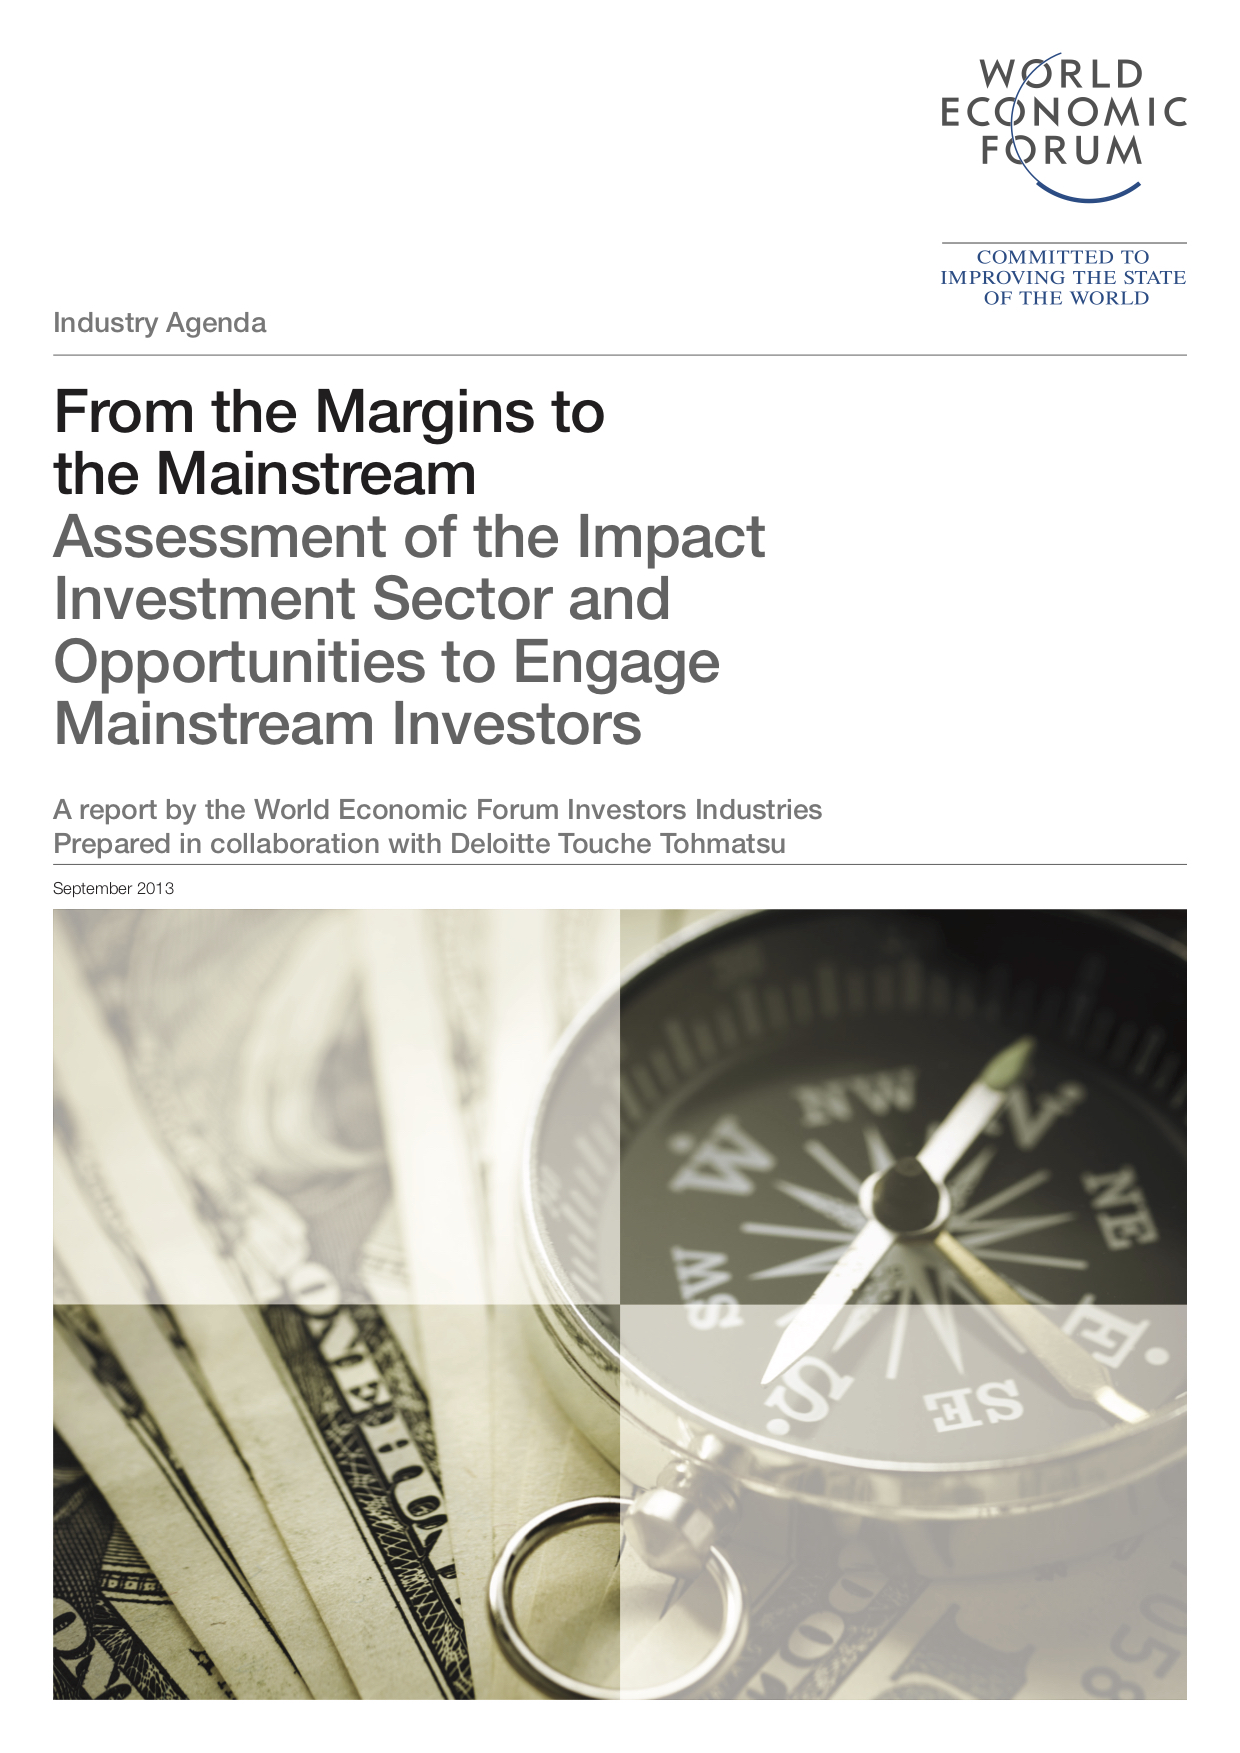 From the Margins to the Mainstream: Assessment of the Impact Investment Sector and Opportunities to Engage Mainstream Investors